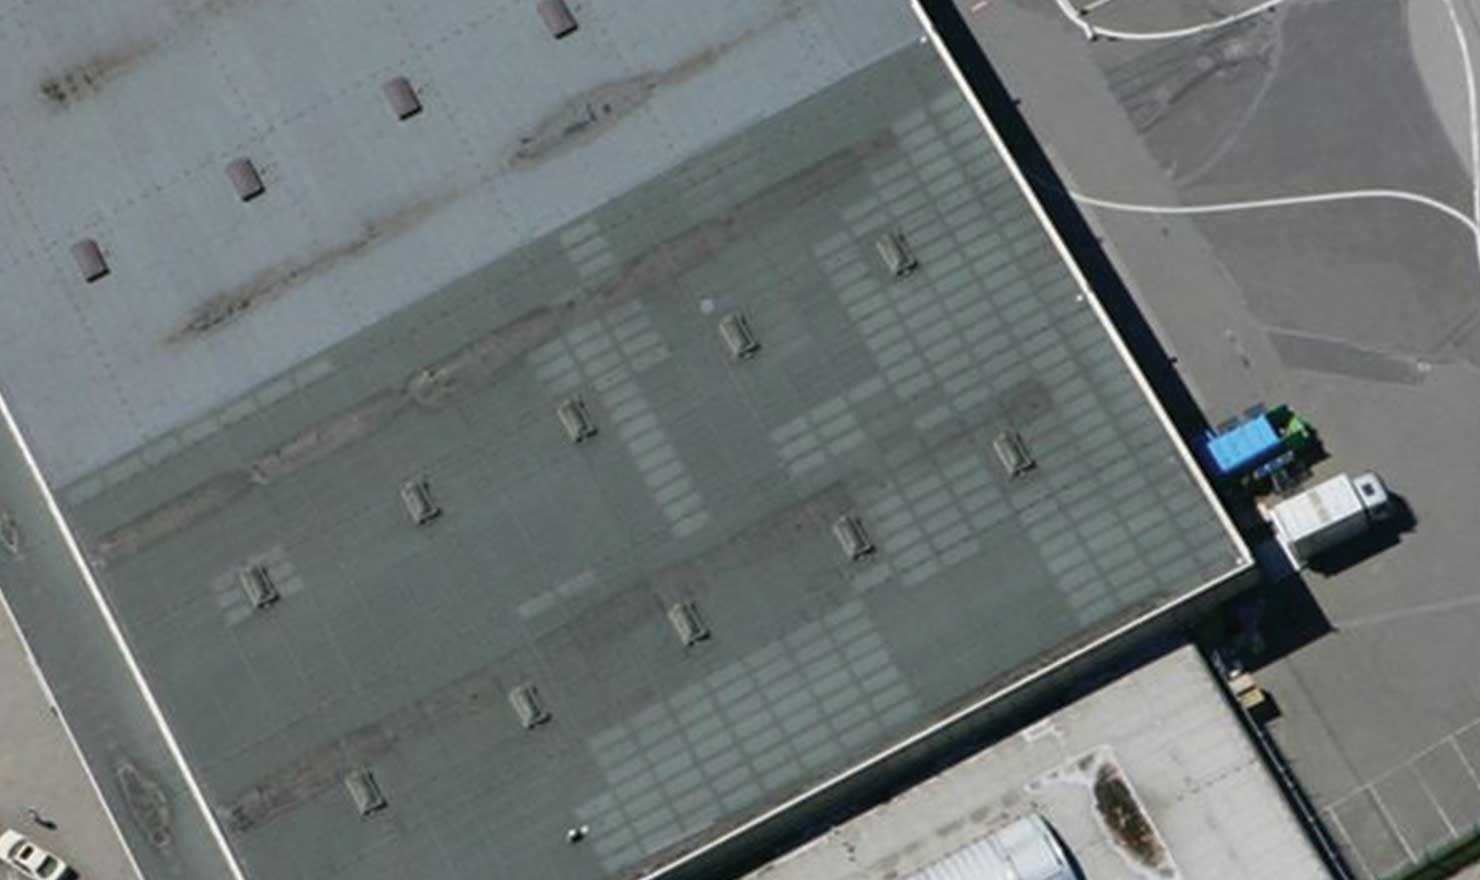 Reroofing Company in Edmonton by MD Roofing - image of large commercial flat roofing